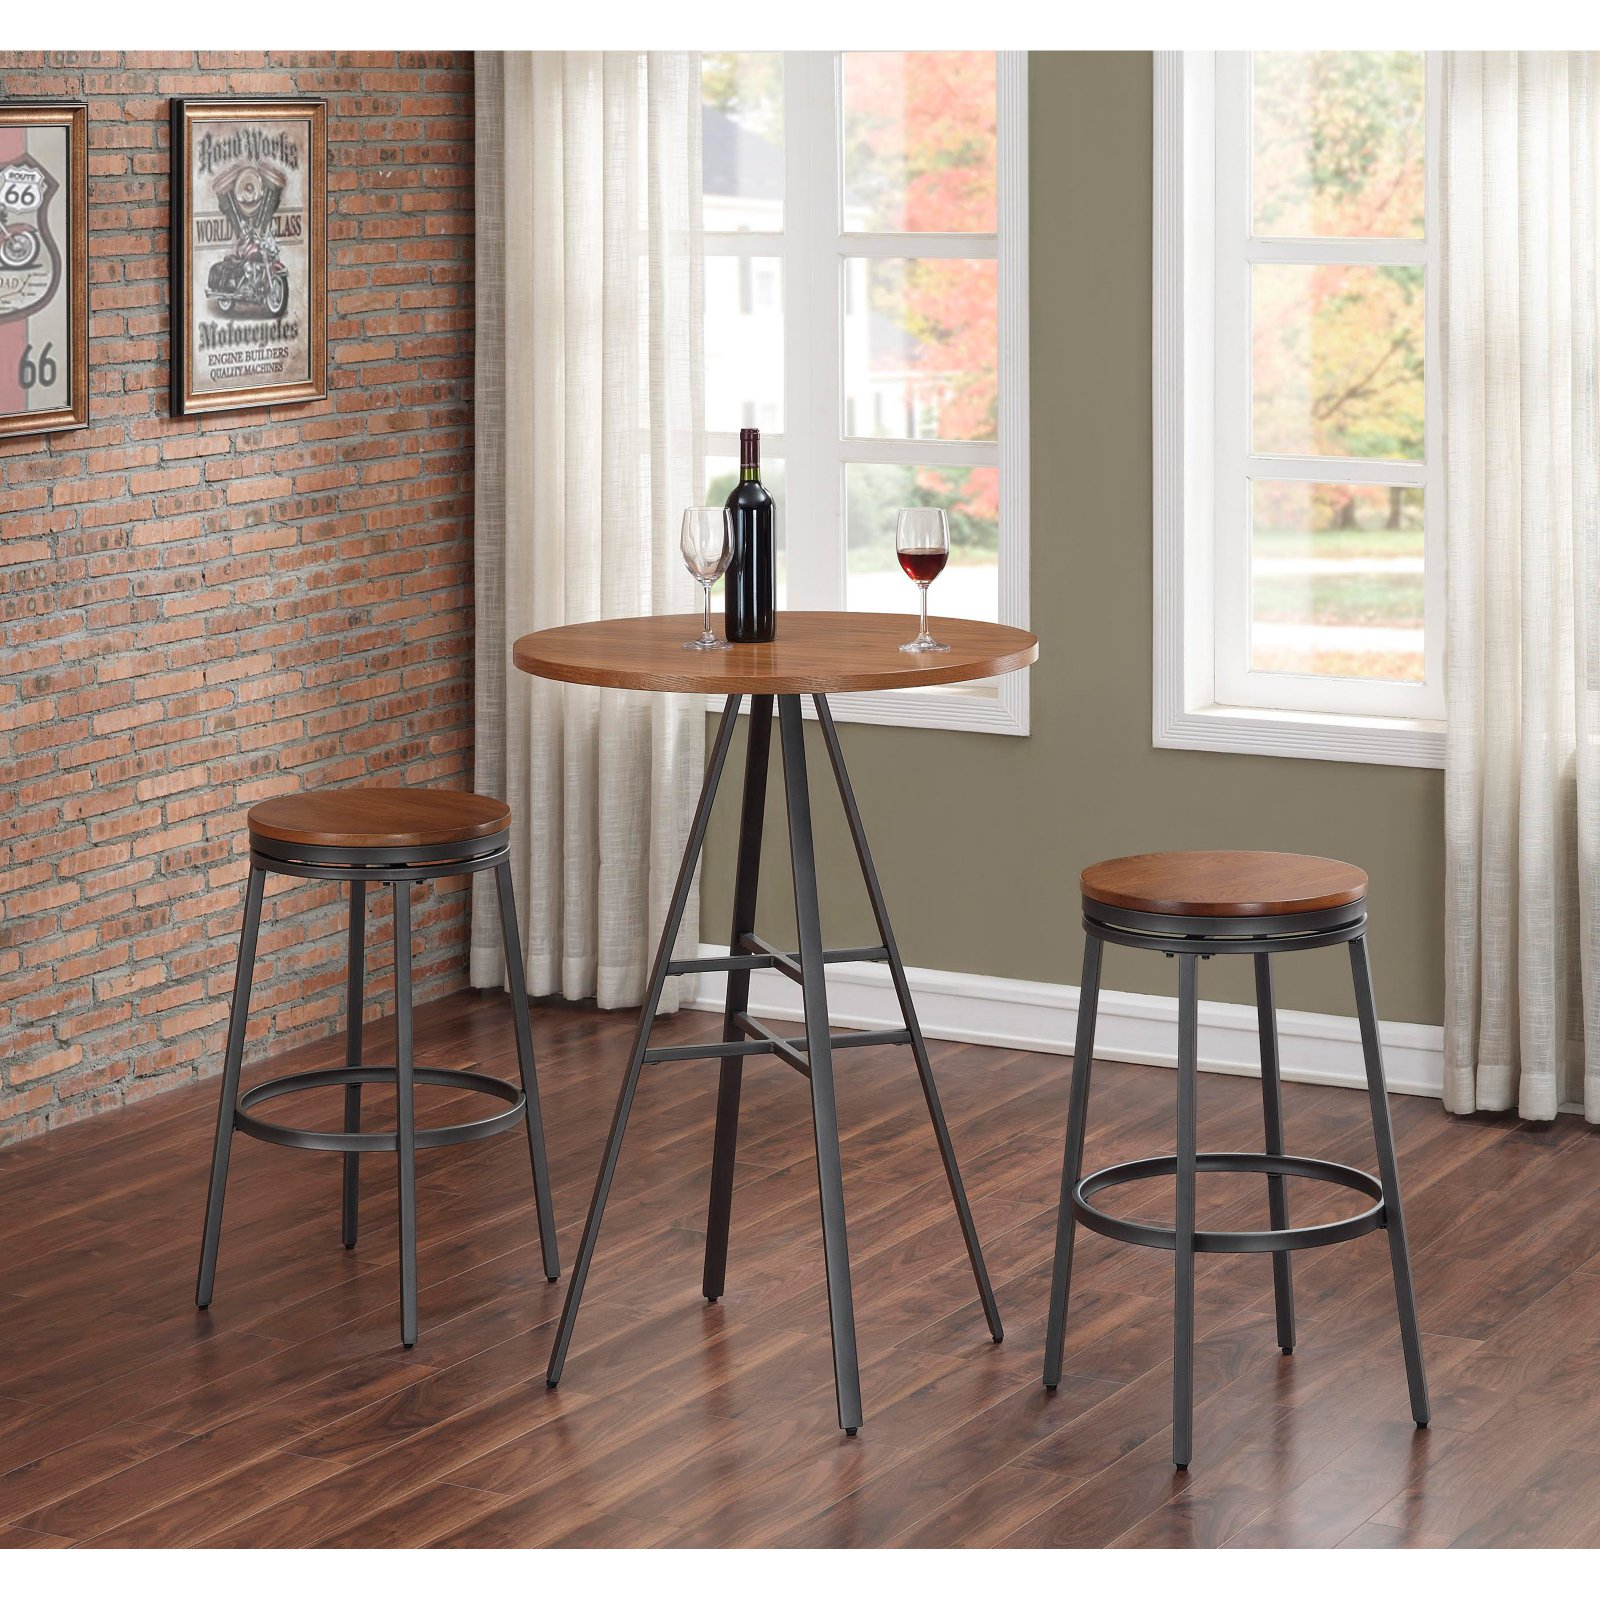 American Woodcrafters Stockton 3 Piece Pub Table Set with Backless Swivel Stools